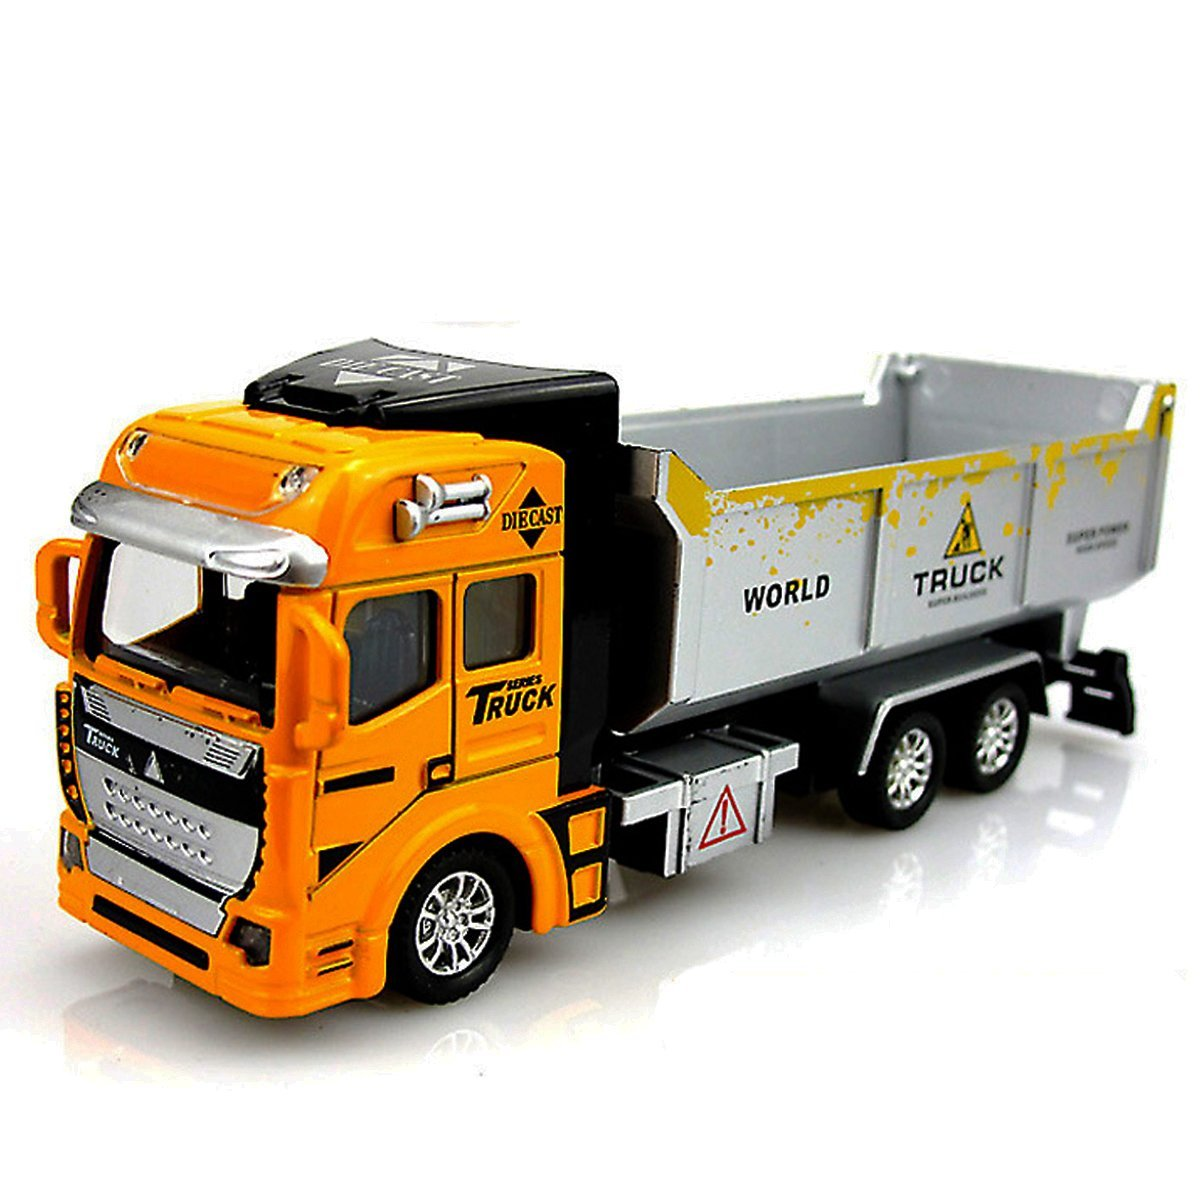 WITERY 1:48 Pull Back Car Truck Tractor Dumpers Model Toys - Construction Vehicle Toy Die Cast Model - for Boys Girls Kids as Christmas Day Gift,Birthday Gift,Children's Day Gift